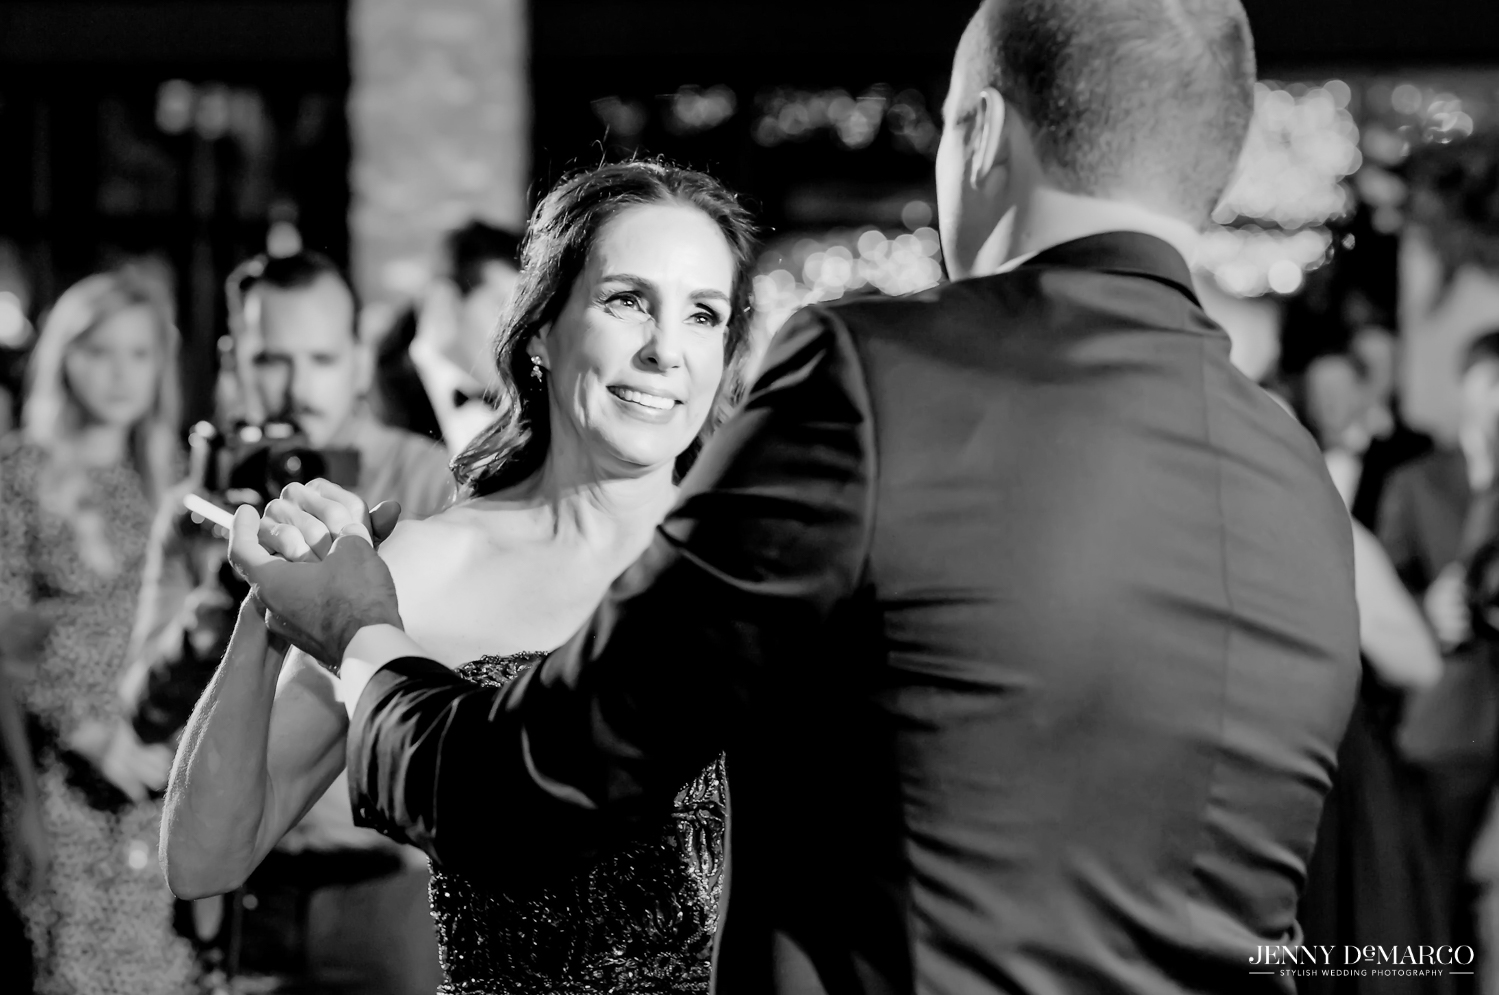 Mother, son dance with groom